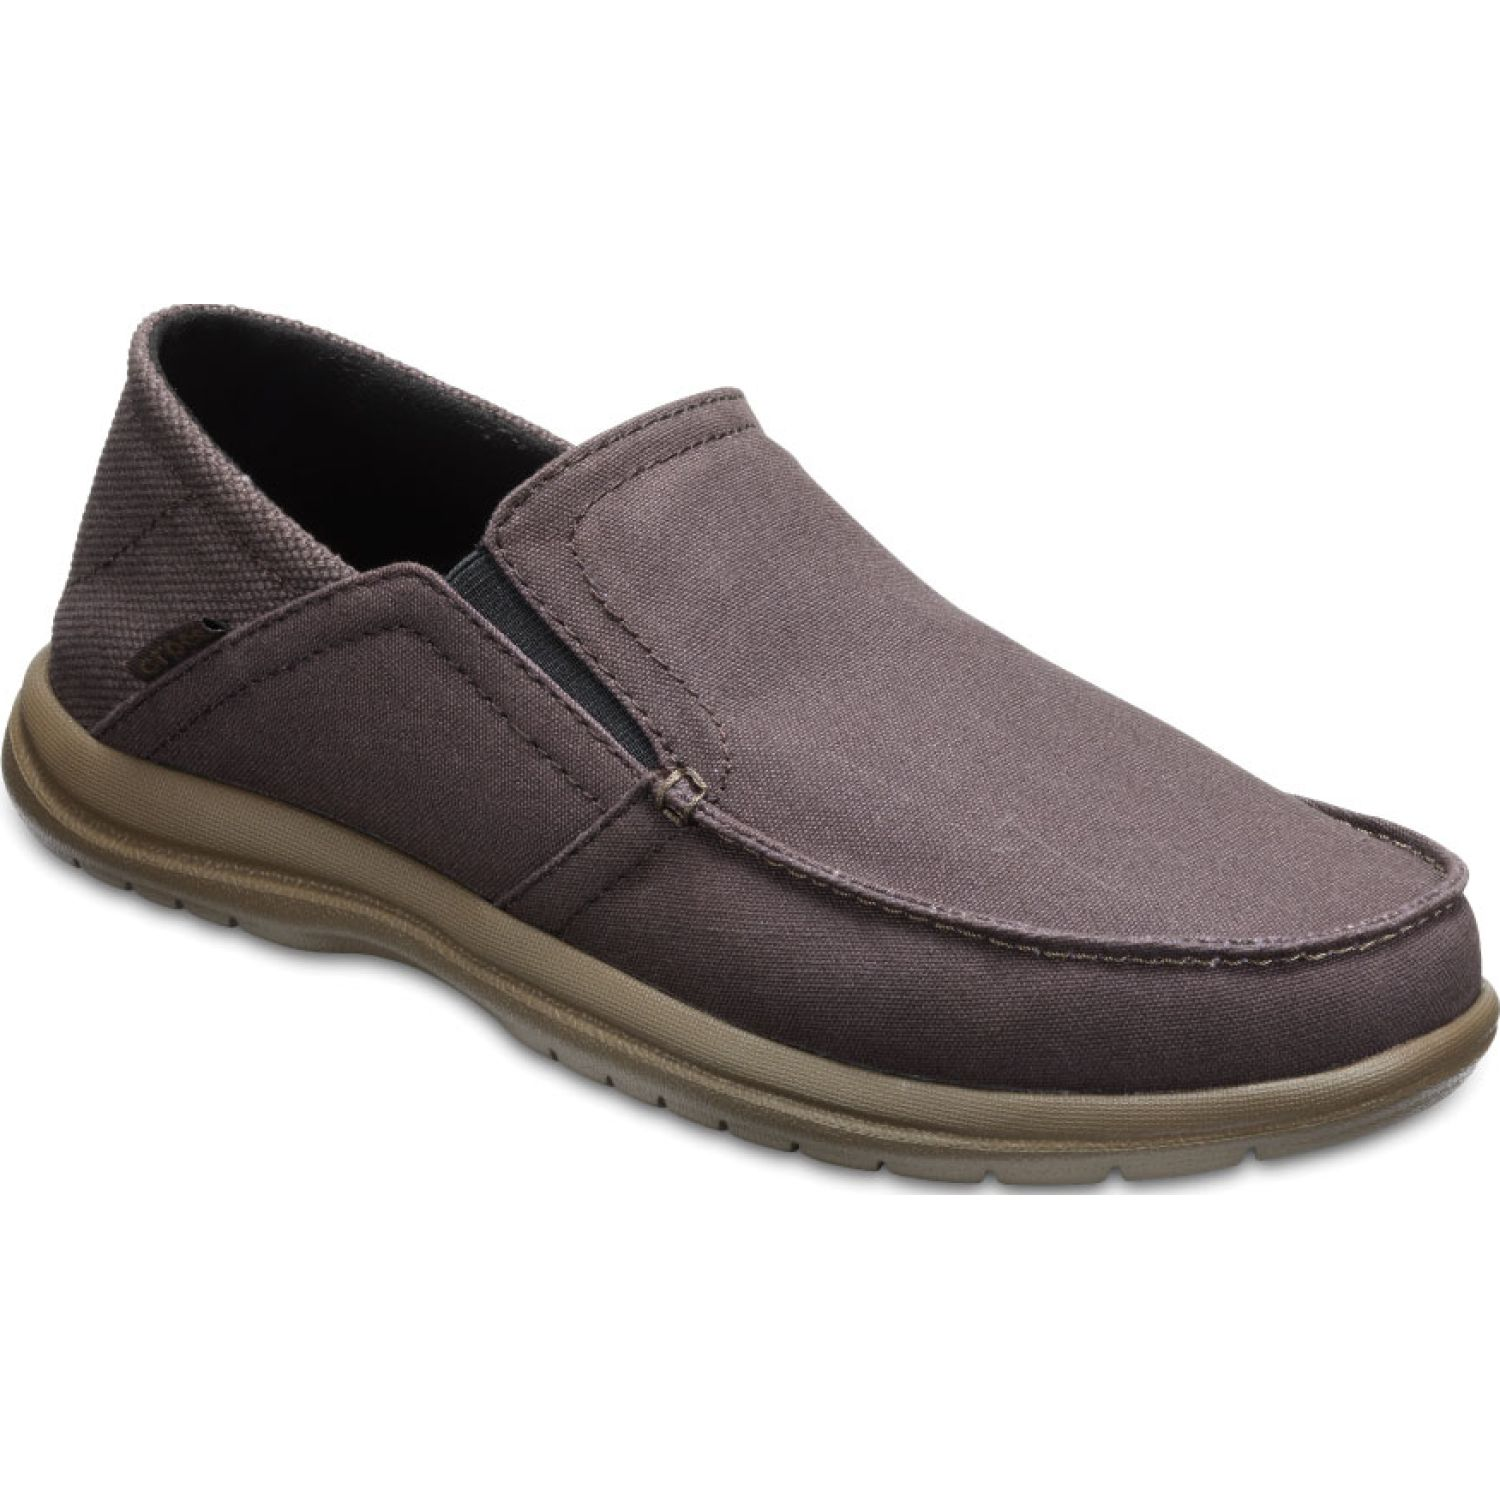 CROCS MEN'S SANTA CRUZ CONVERTIBLE SLIP-ON Café Mocasines y Slip-Ons